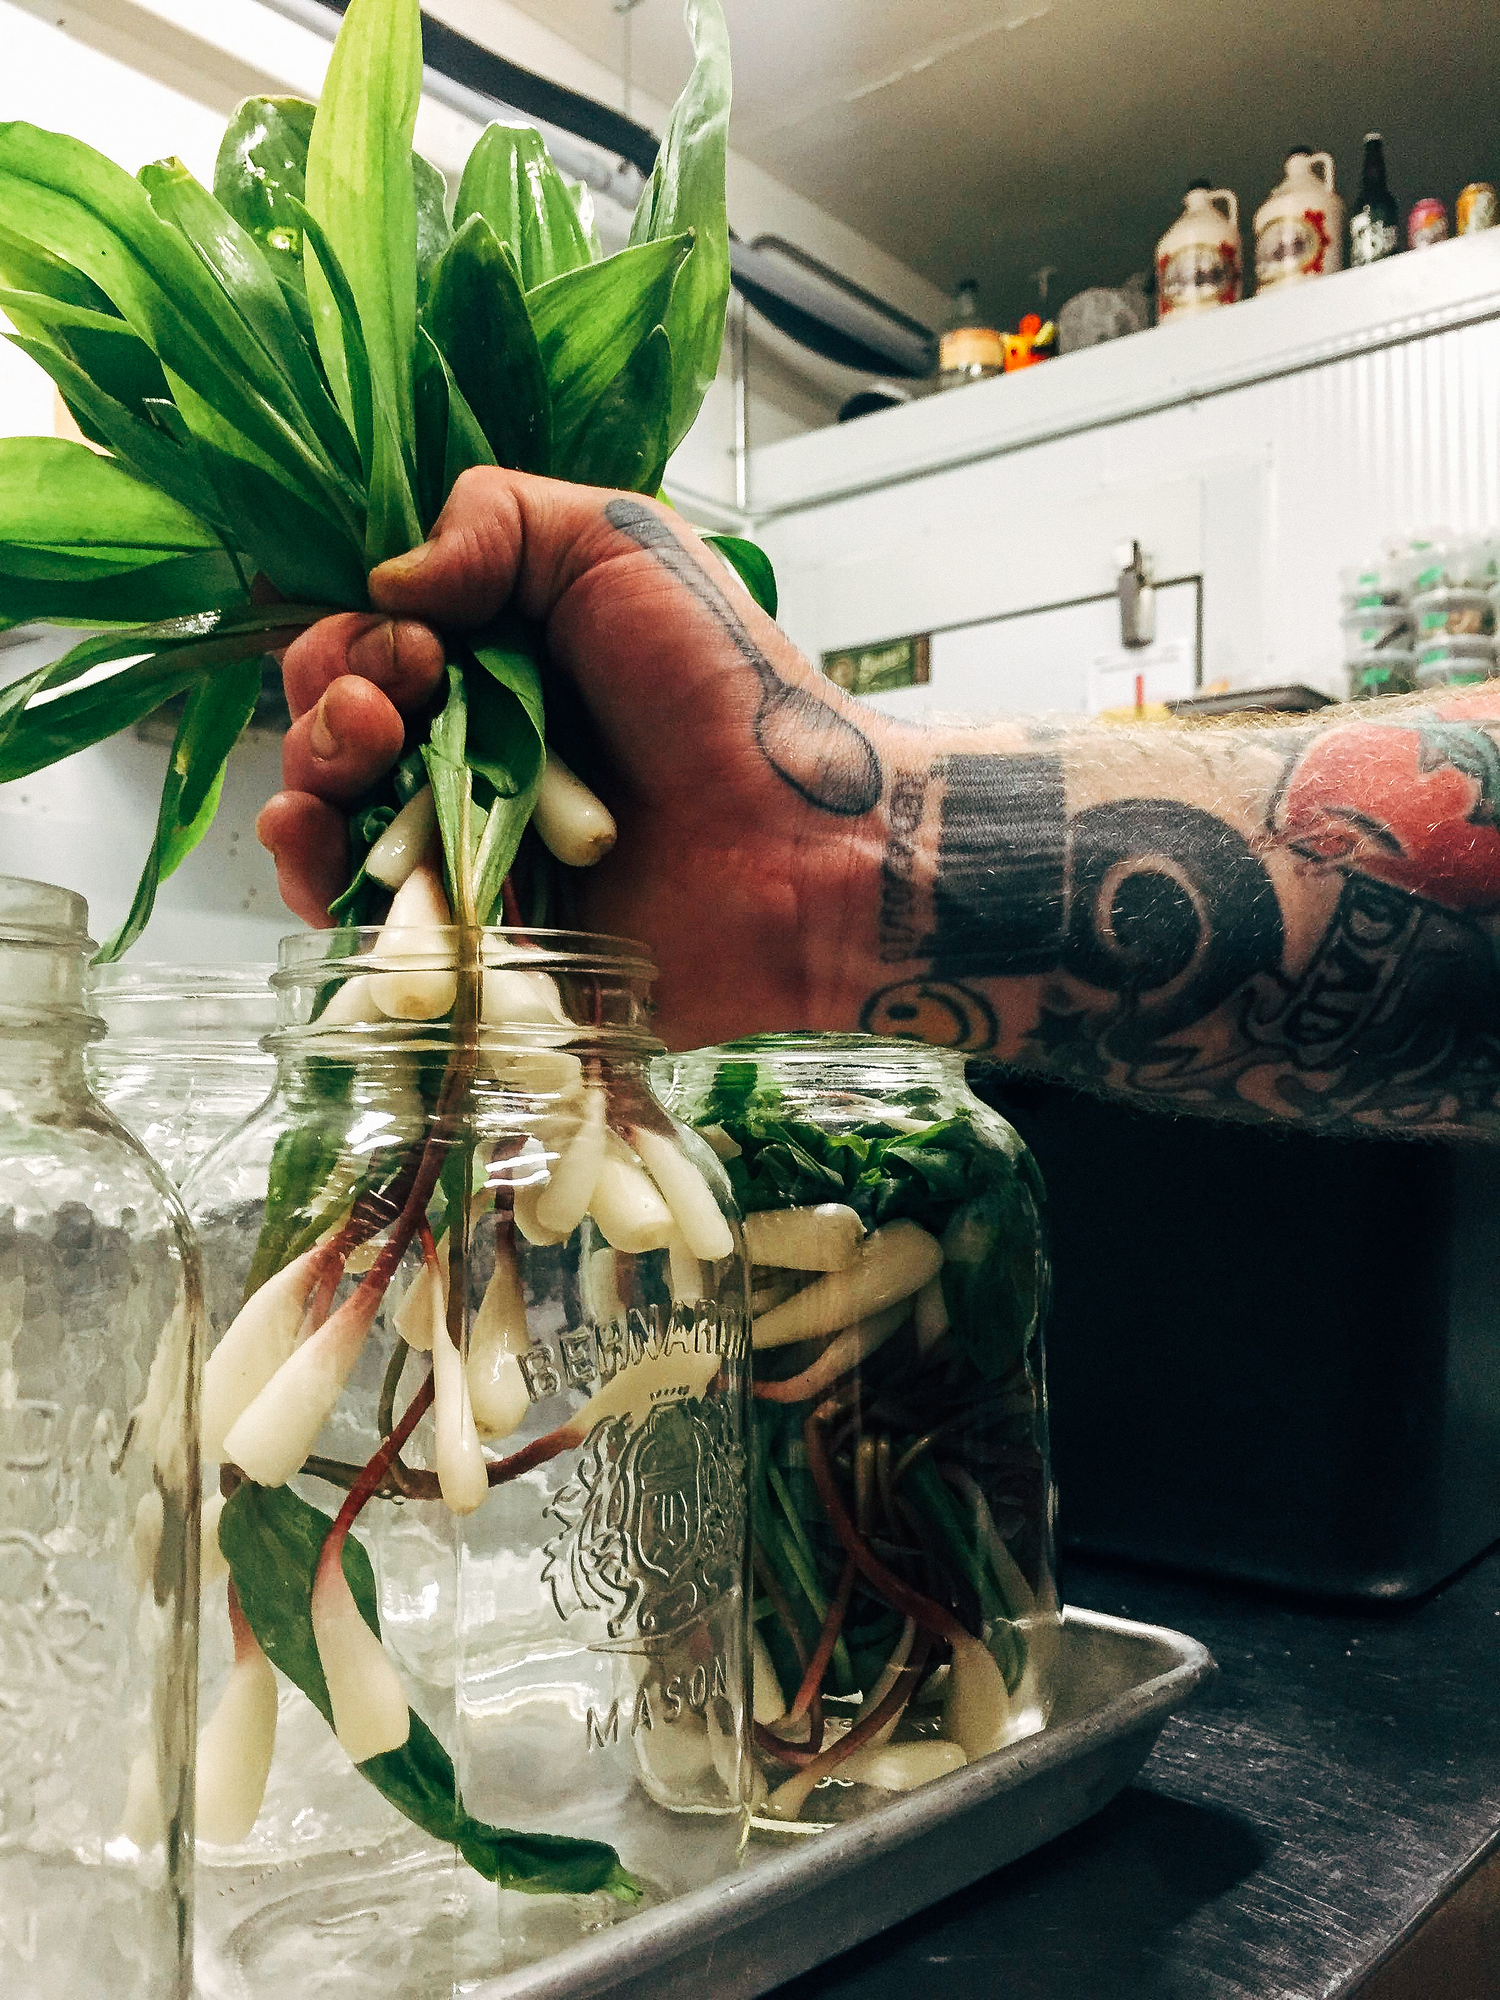 Pickled ramps are so easy to make and you can preserve the wild leek flavor all year long.